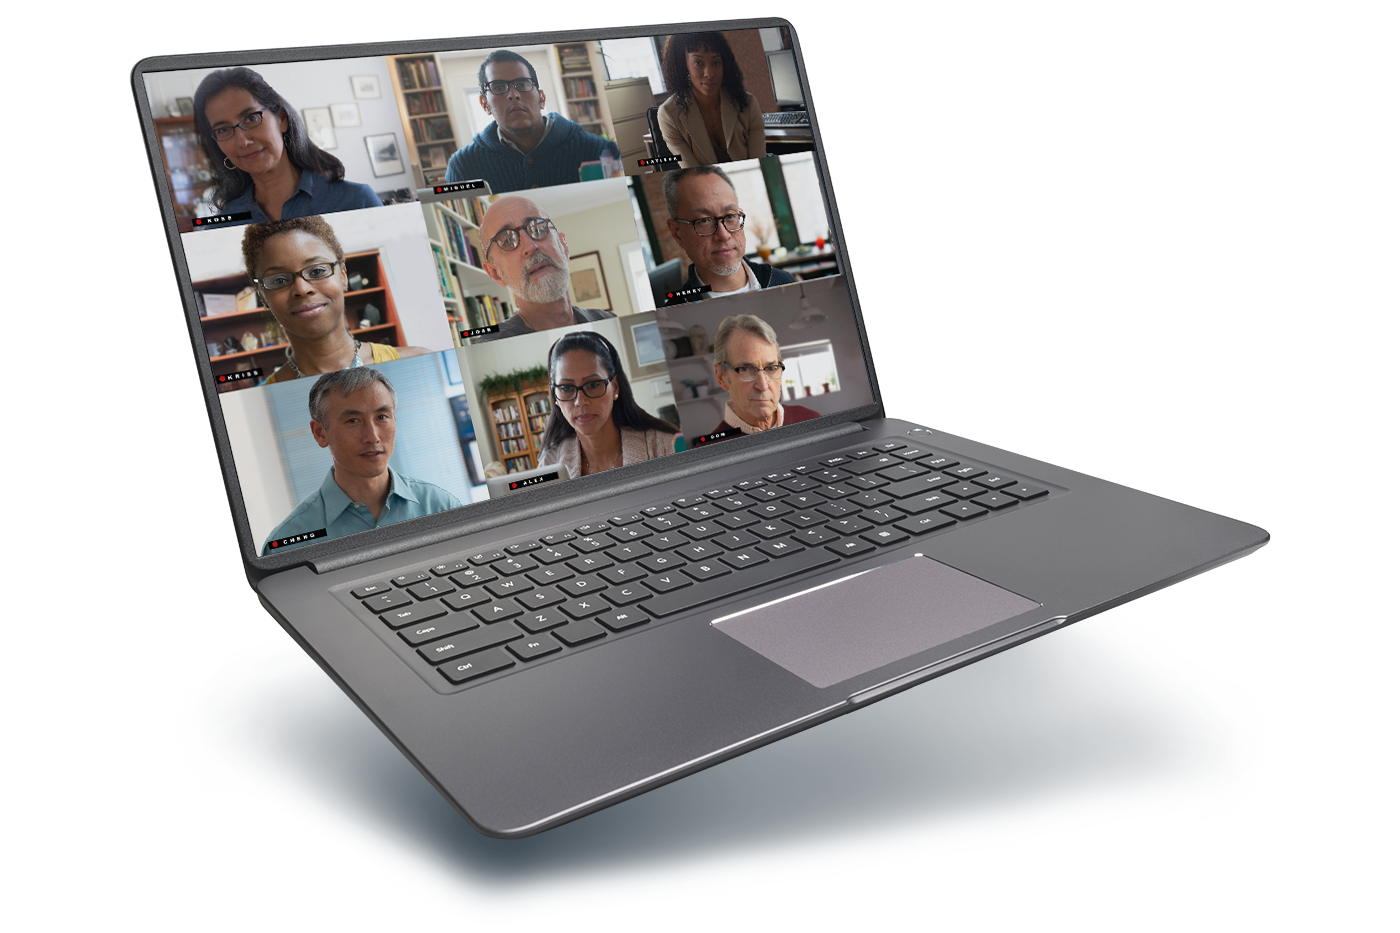 laptop with video conference on screen